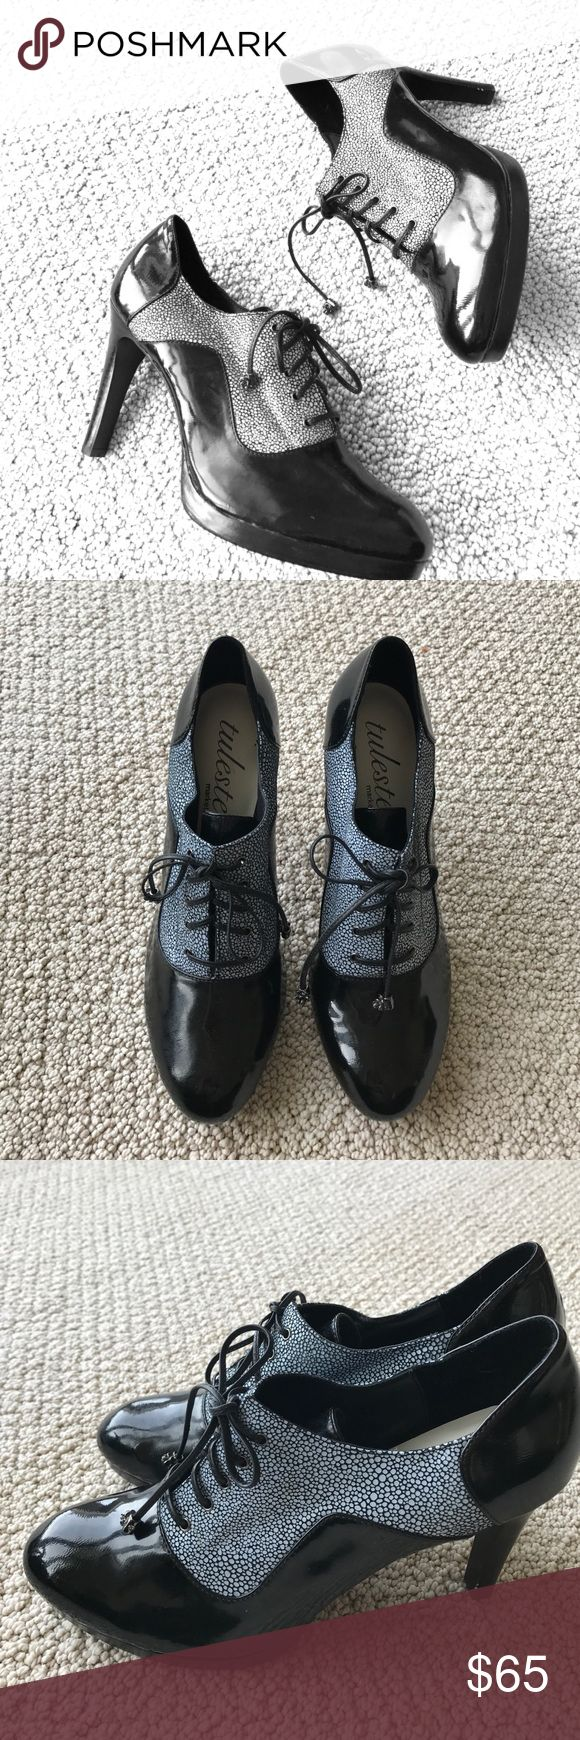 """Black and White Leather Lace-Up Ankle Booties So cute and perfectly on trend! Excellent condition (one small mark on heel in pic 6). Laces have a cute embellishment at the ends. 4"""" heels. 0.5"""" platform. No trades please! Tuleste Market Shoes Ankle Boots & Booties"""